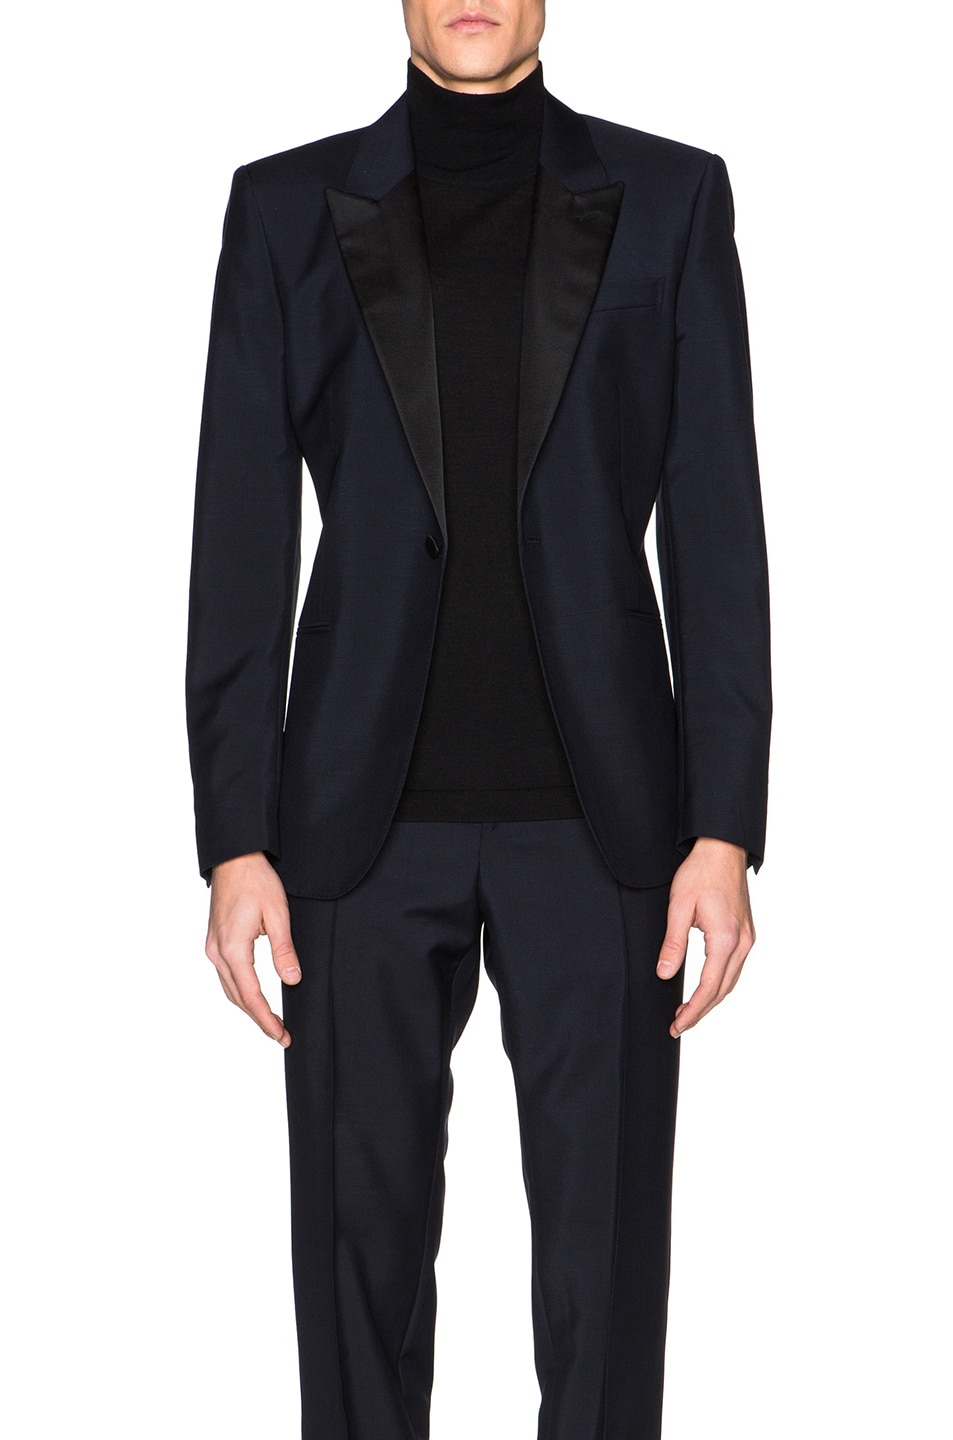 Image 1 of Alexander McQueen Satin Lapel Blazer in Navy Blue